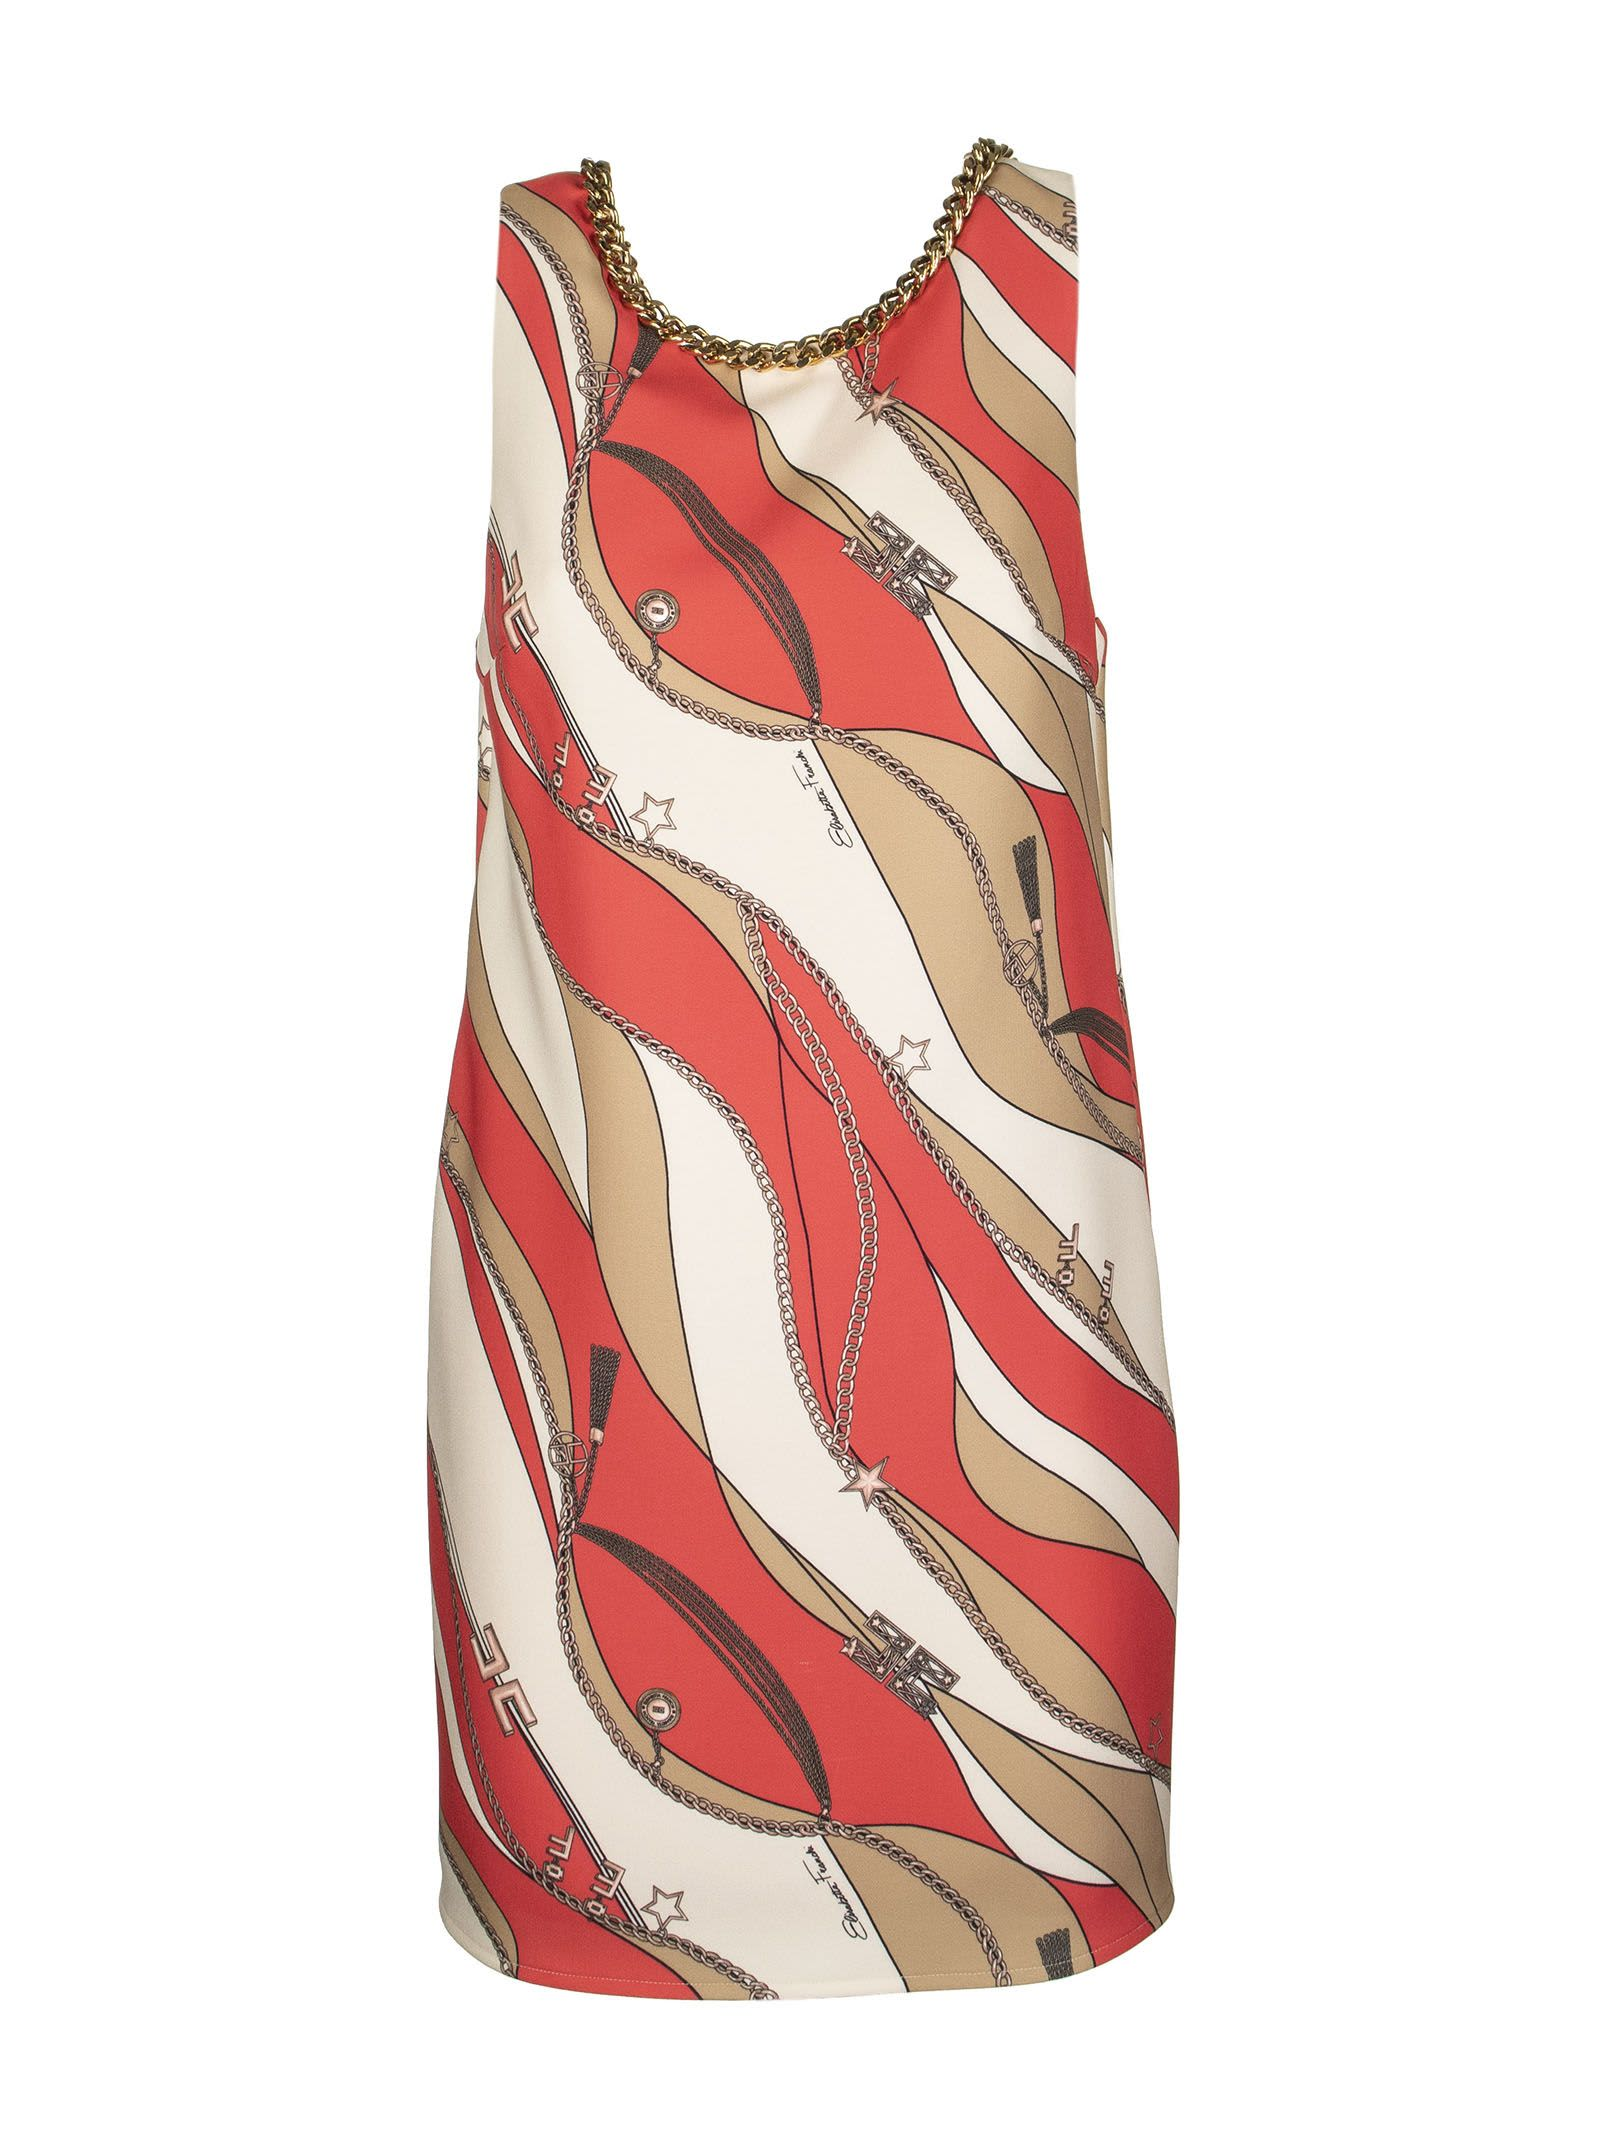 Buy Elisabetta Franchi Celyn B. Boxy Dress With Foulard Print online, shop Elisabetta Franchi Celyn B. with free shipping